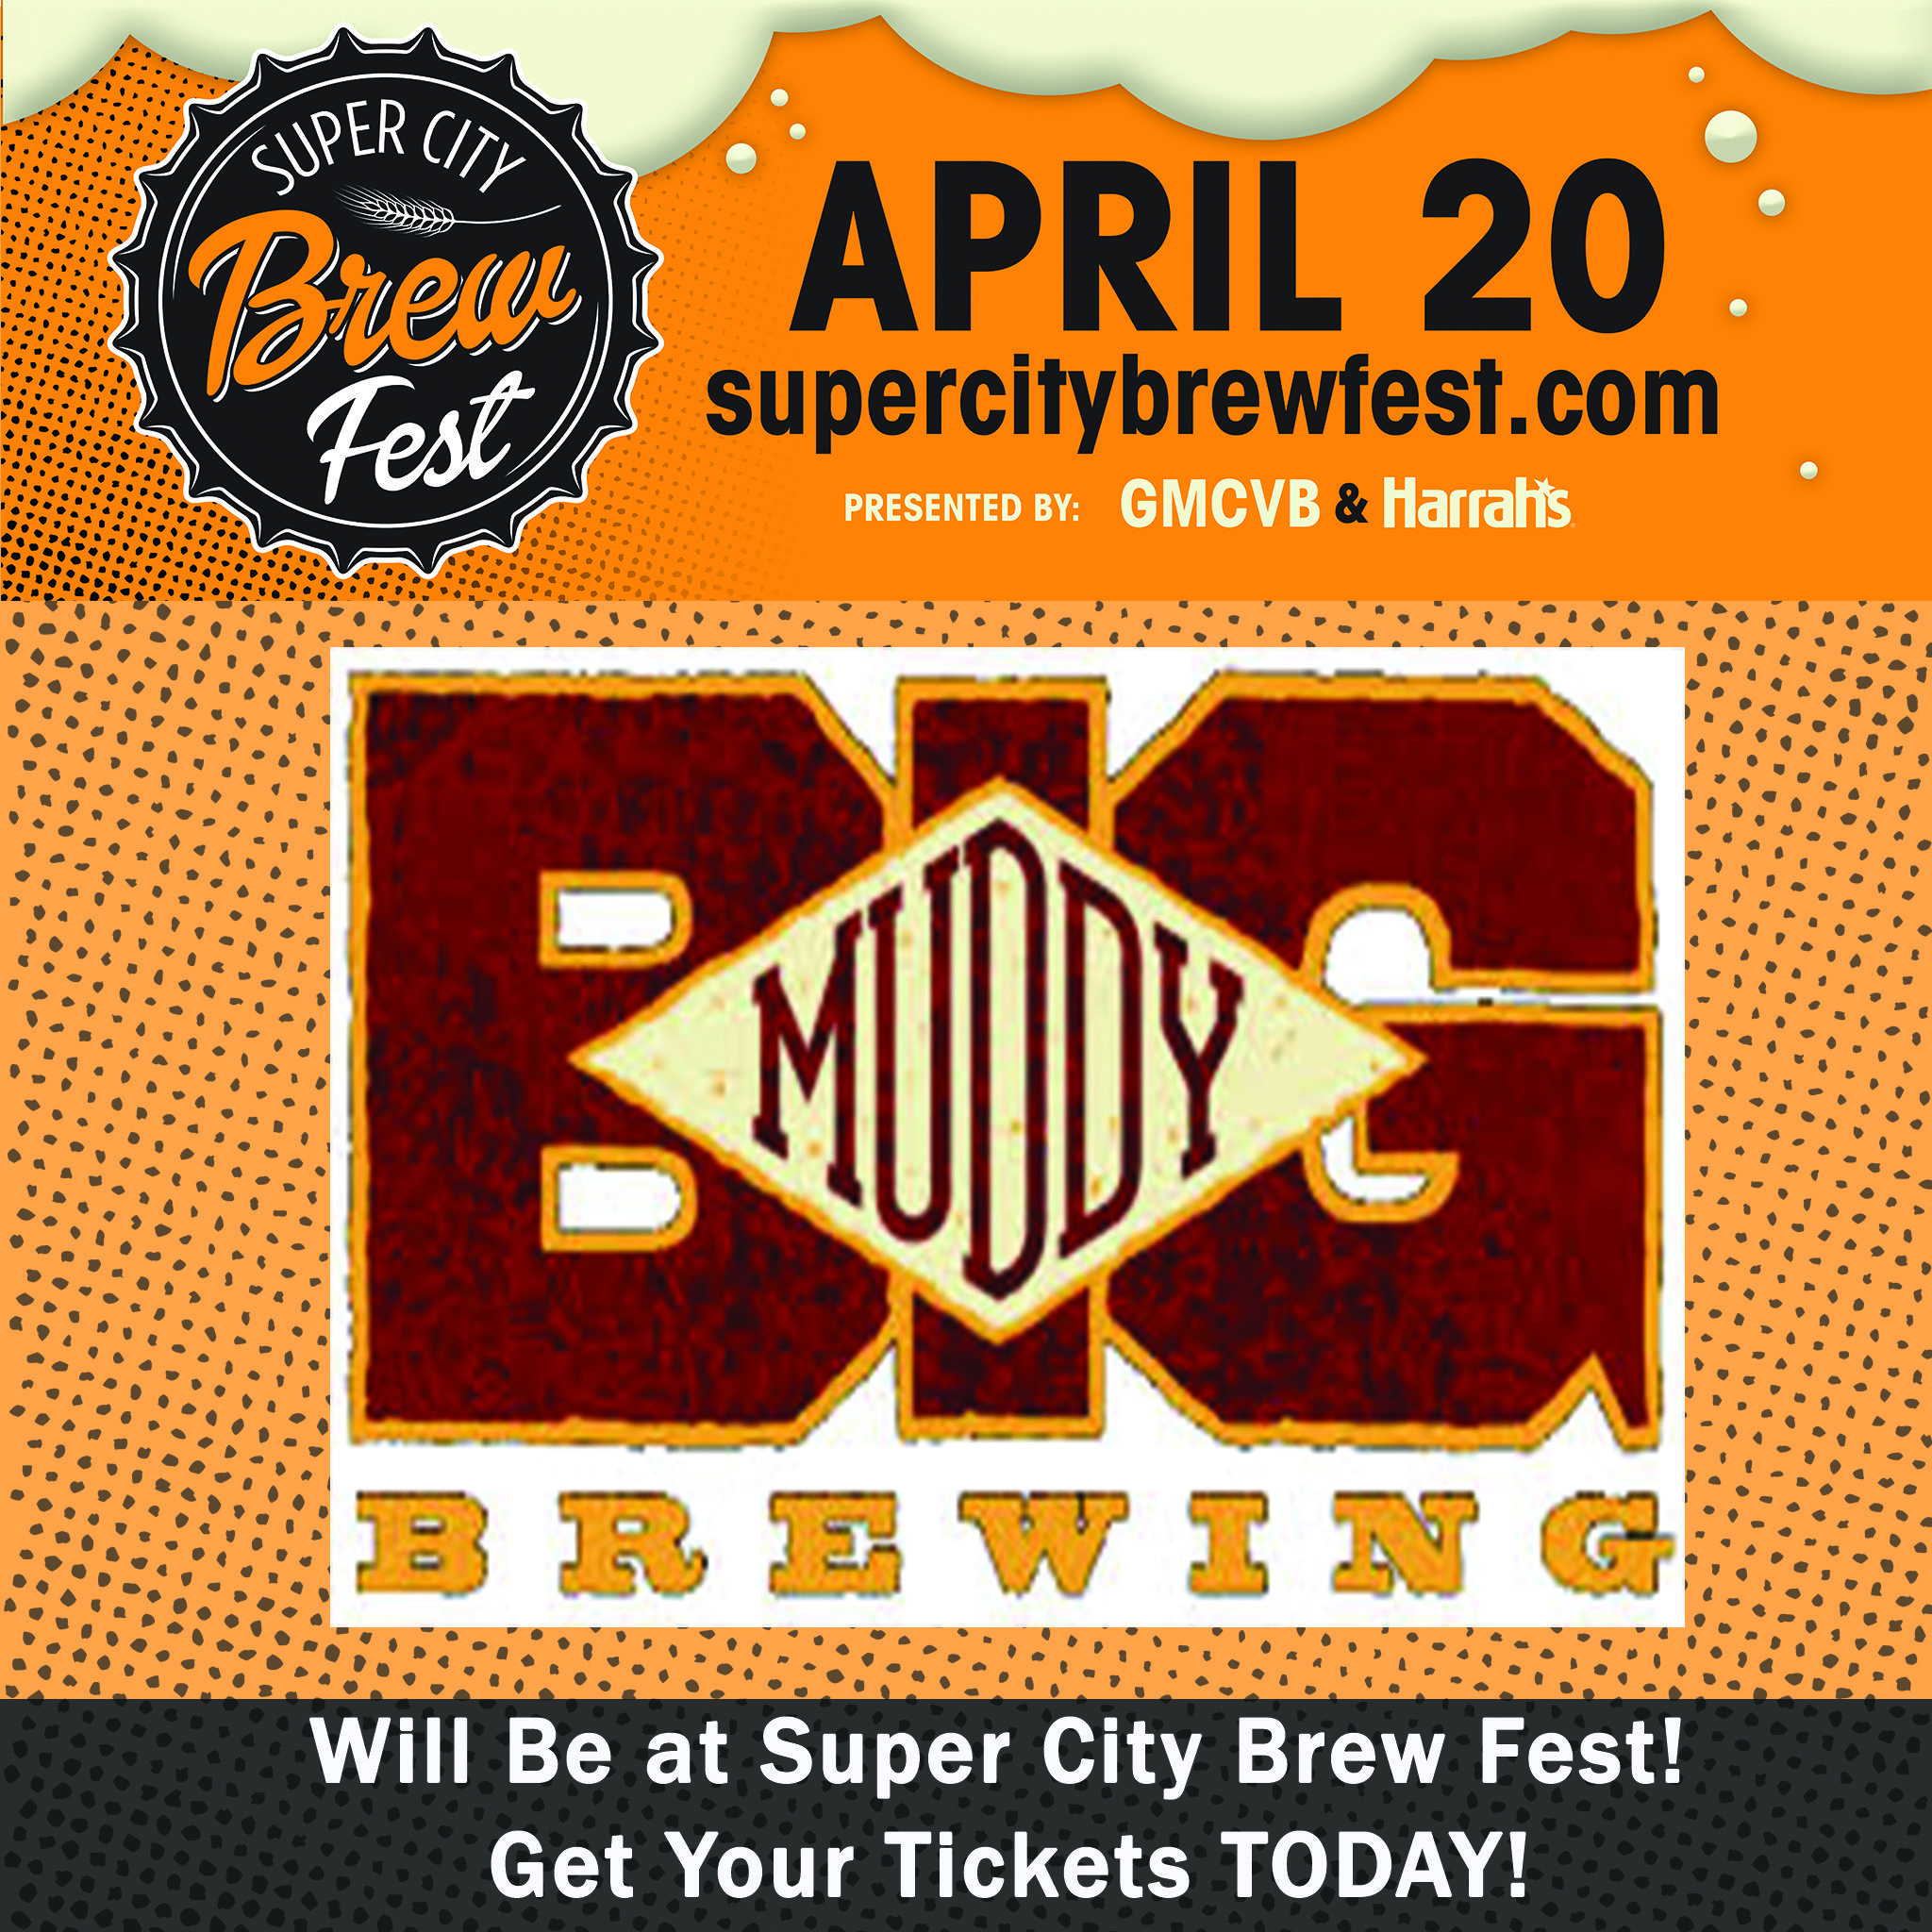 Get Your Tickets Today With Images City Brew Brew Fest Brewing